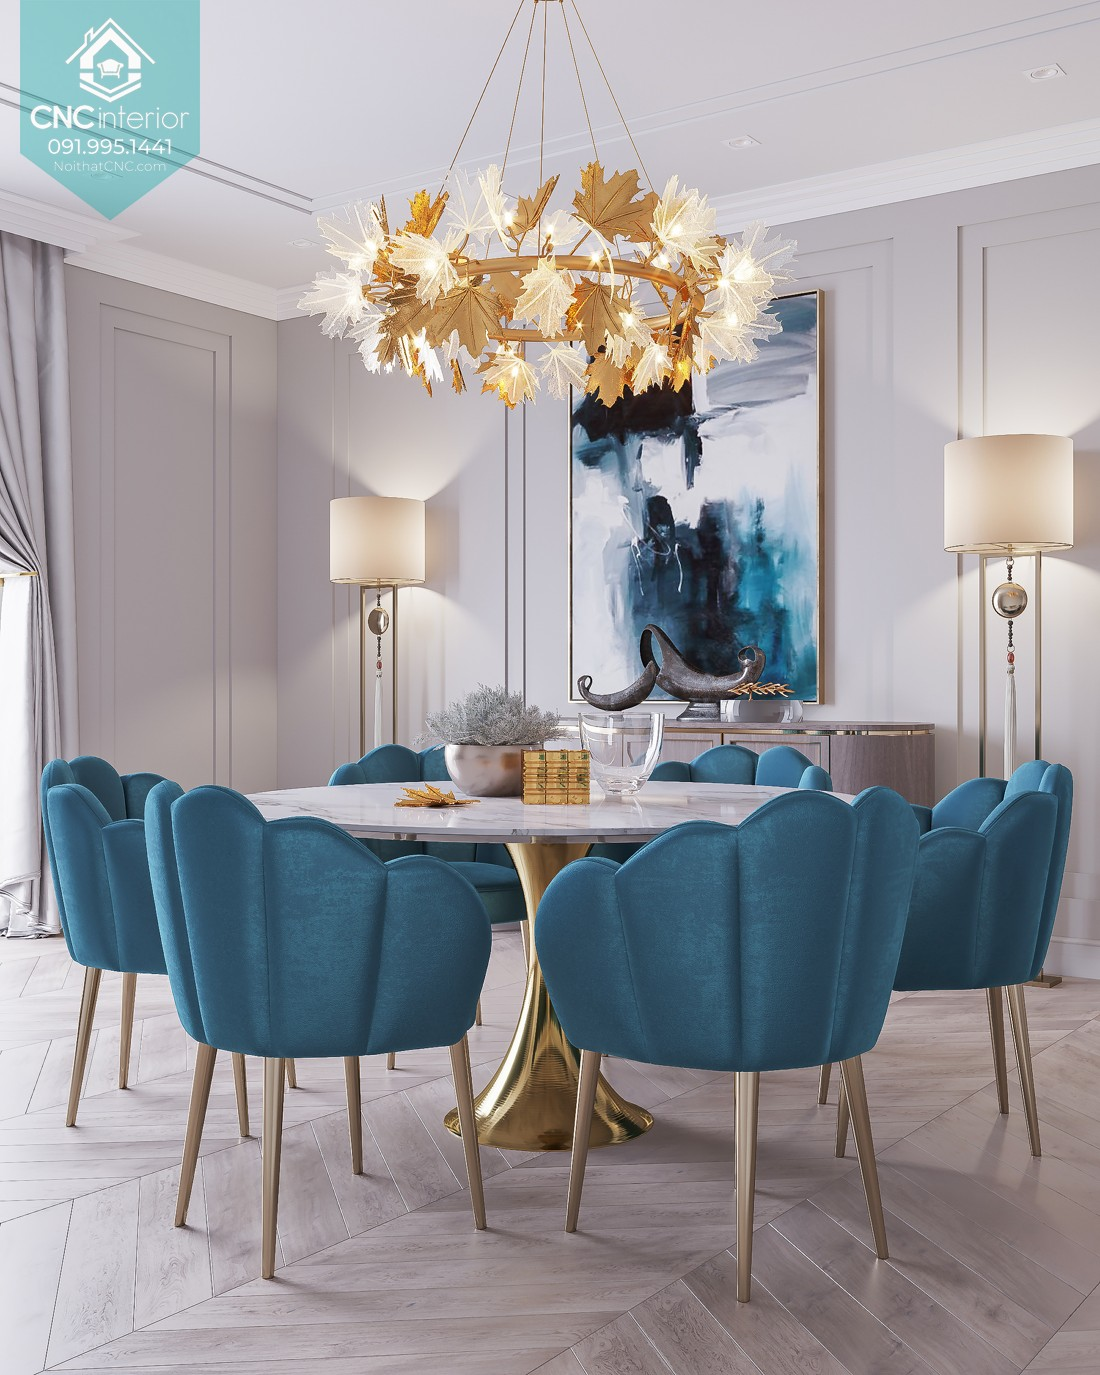 TOP REASONS TO CHOOSE DINING TABLE VIETNAM 22